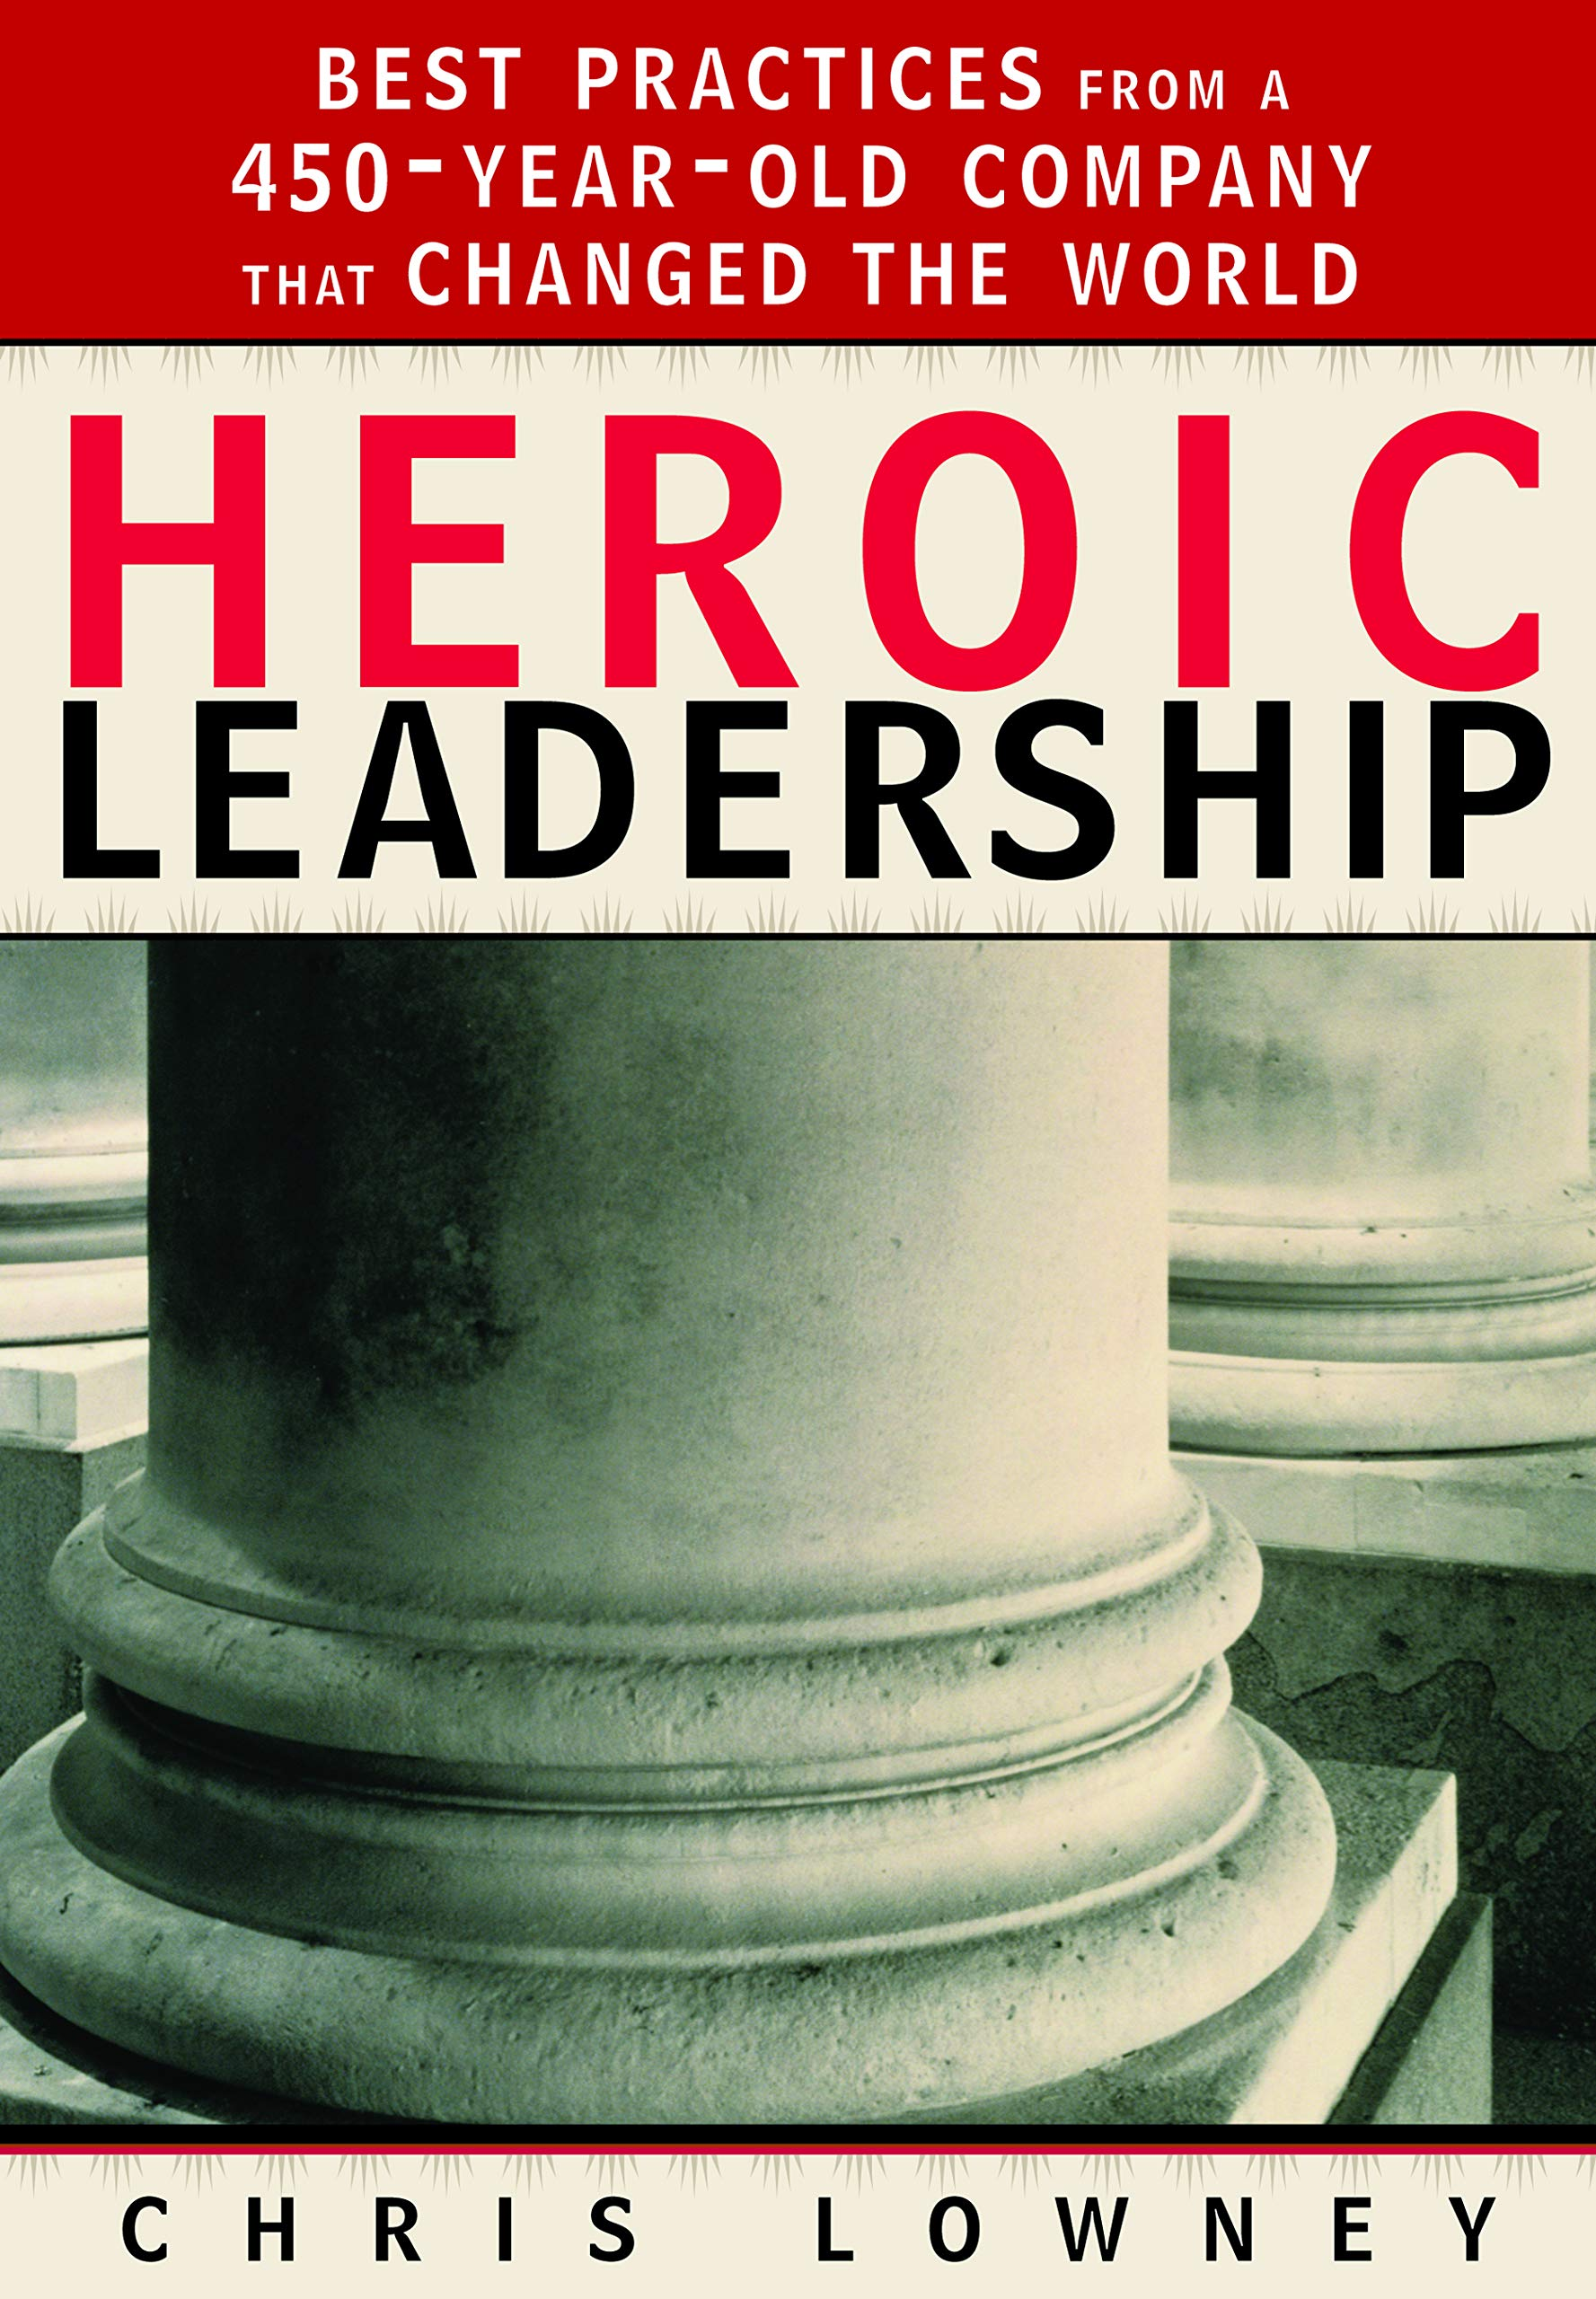 Heroic Leadership: Best Practices from a 450-Year-Old